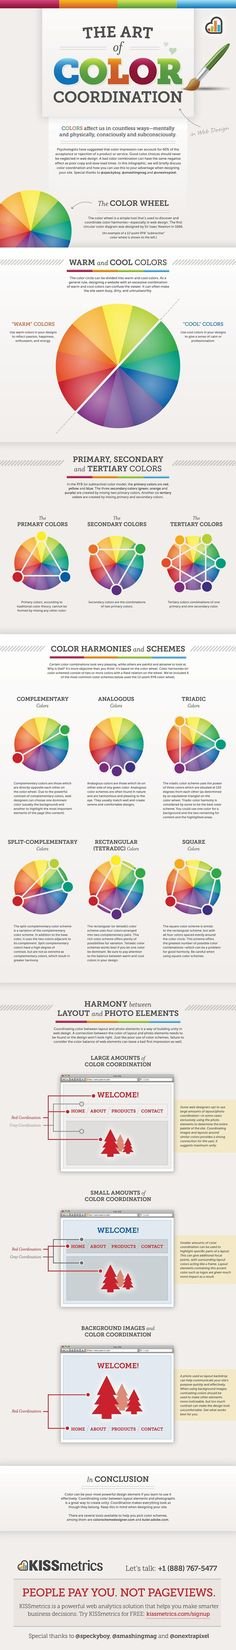 Follow this link to see different colour schemes created using a traditional colour wheel.